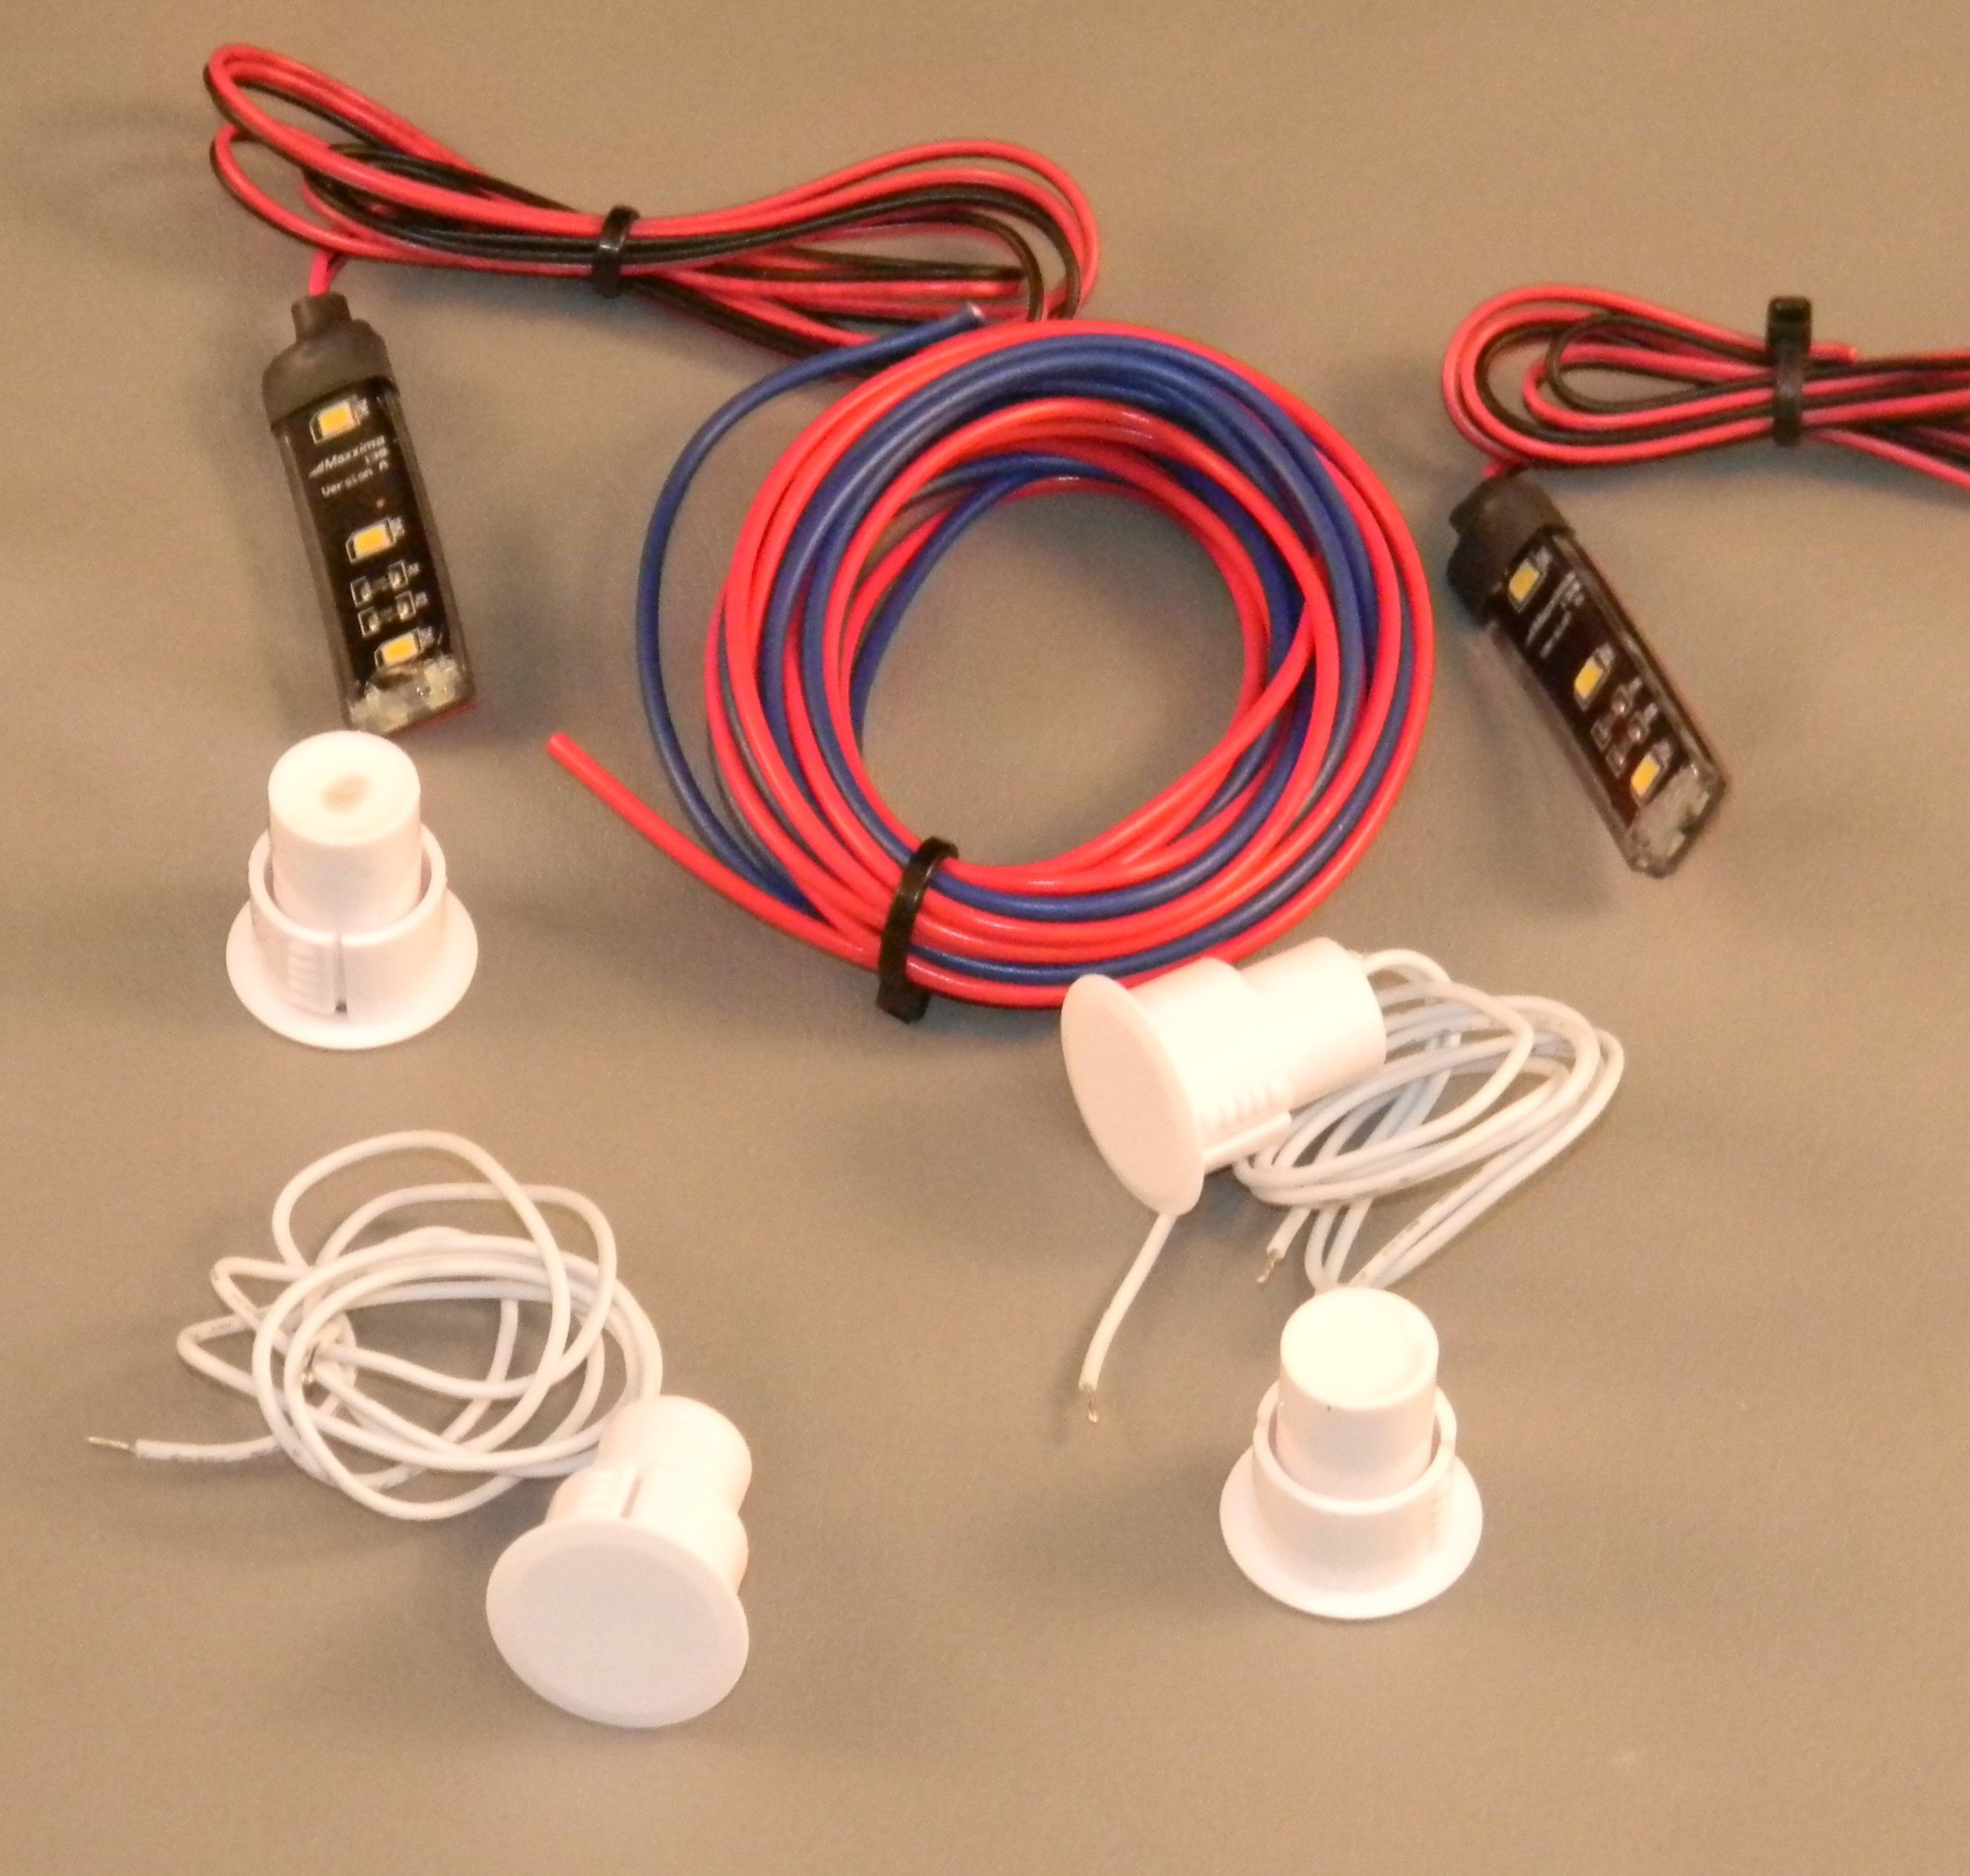 9929e880c6349d8dde4bb0a162c92962 hidden door jam switch kit this kit includes 2 of our 2\